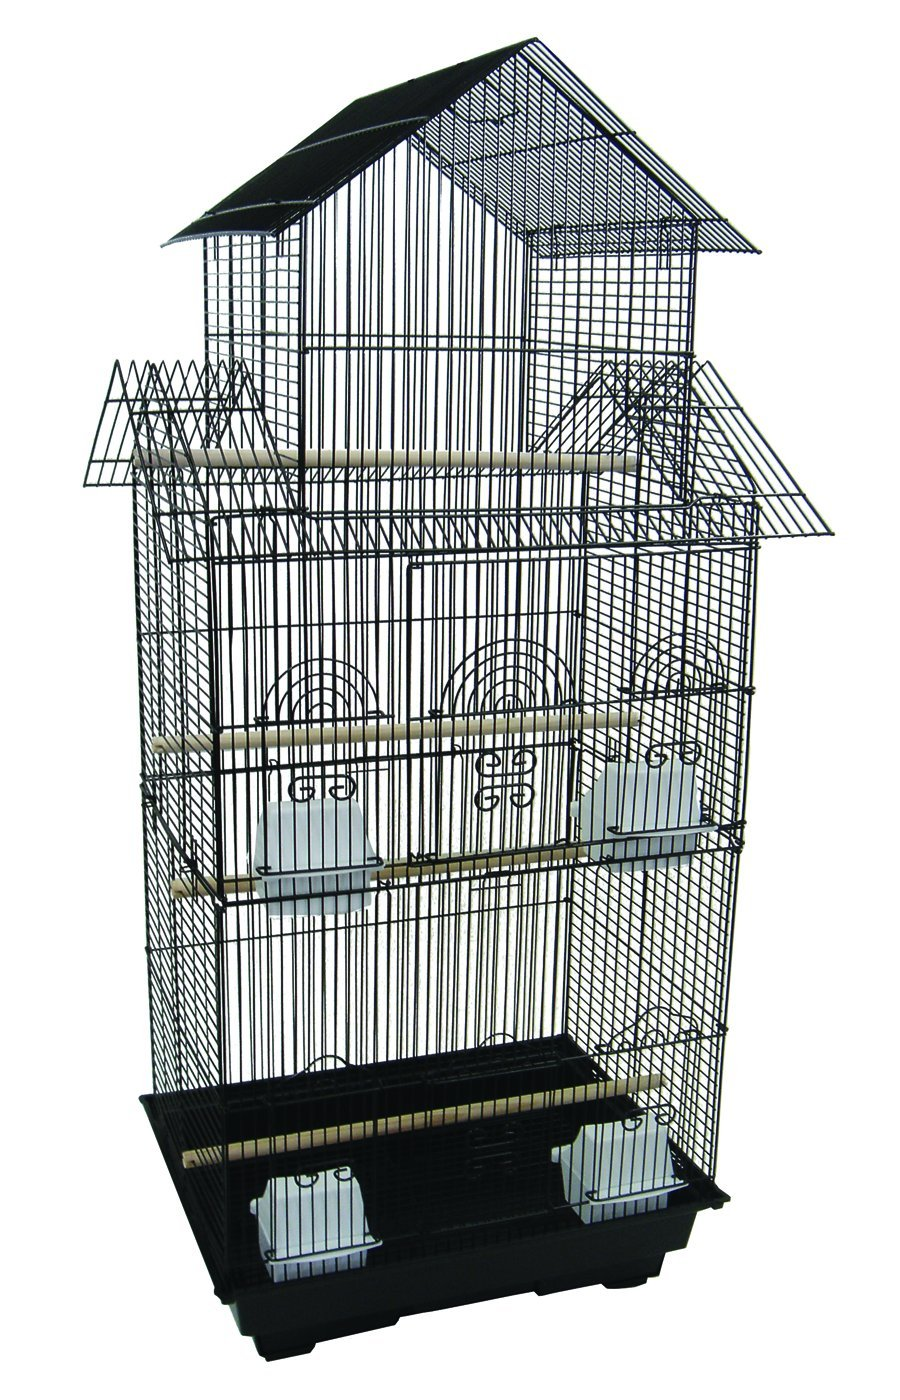 YML 6844 3/8 Bar Spacing Tall Pagoda Top Bird Cage with Stand Black YML GROUP INC 6844BLK